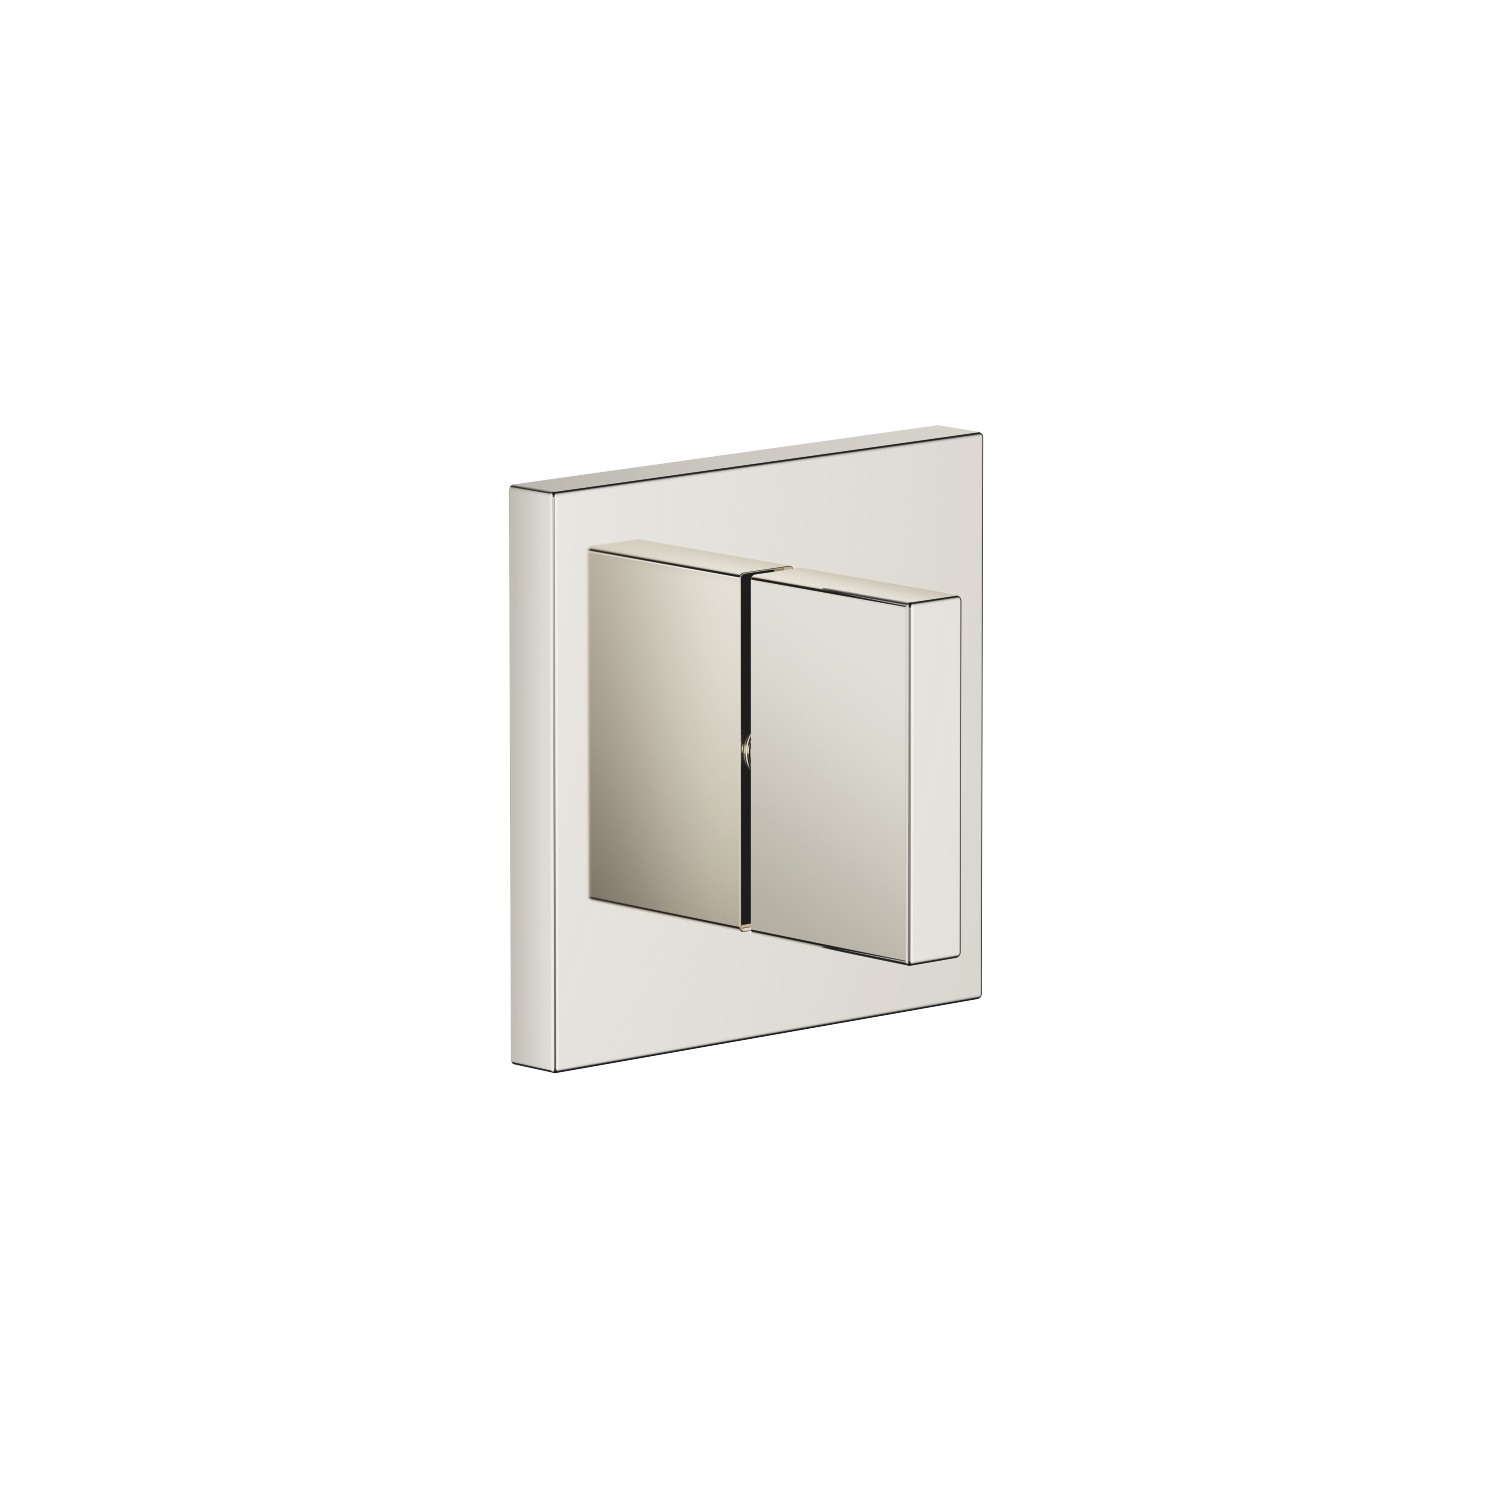 Concealed two- and three-way diverter - platinum